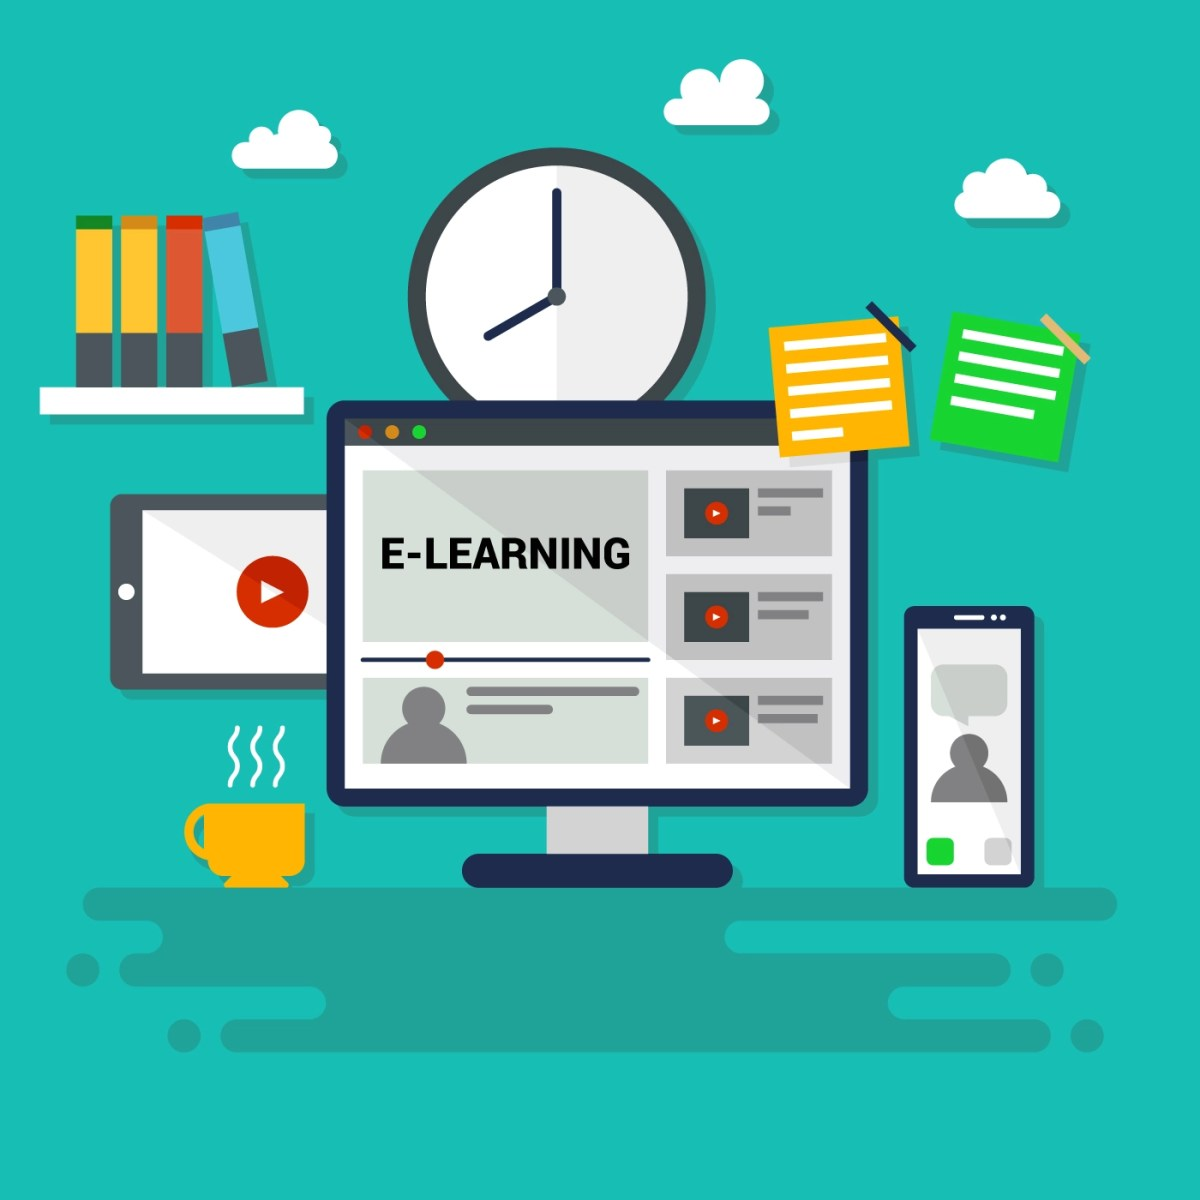 Iconic E-Learning Vector - Download Free Vectors, Clipart Graphics & Vector  Art